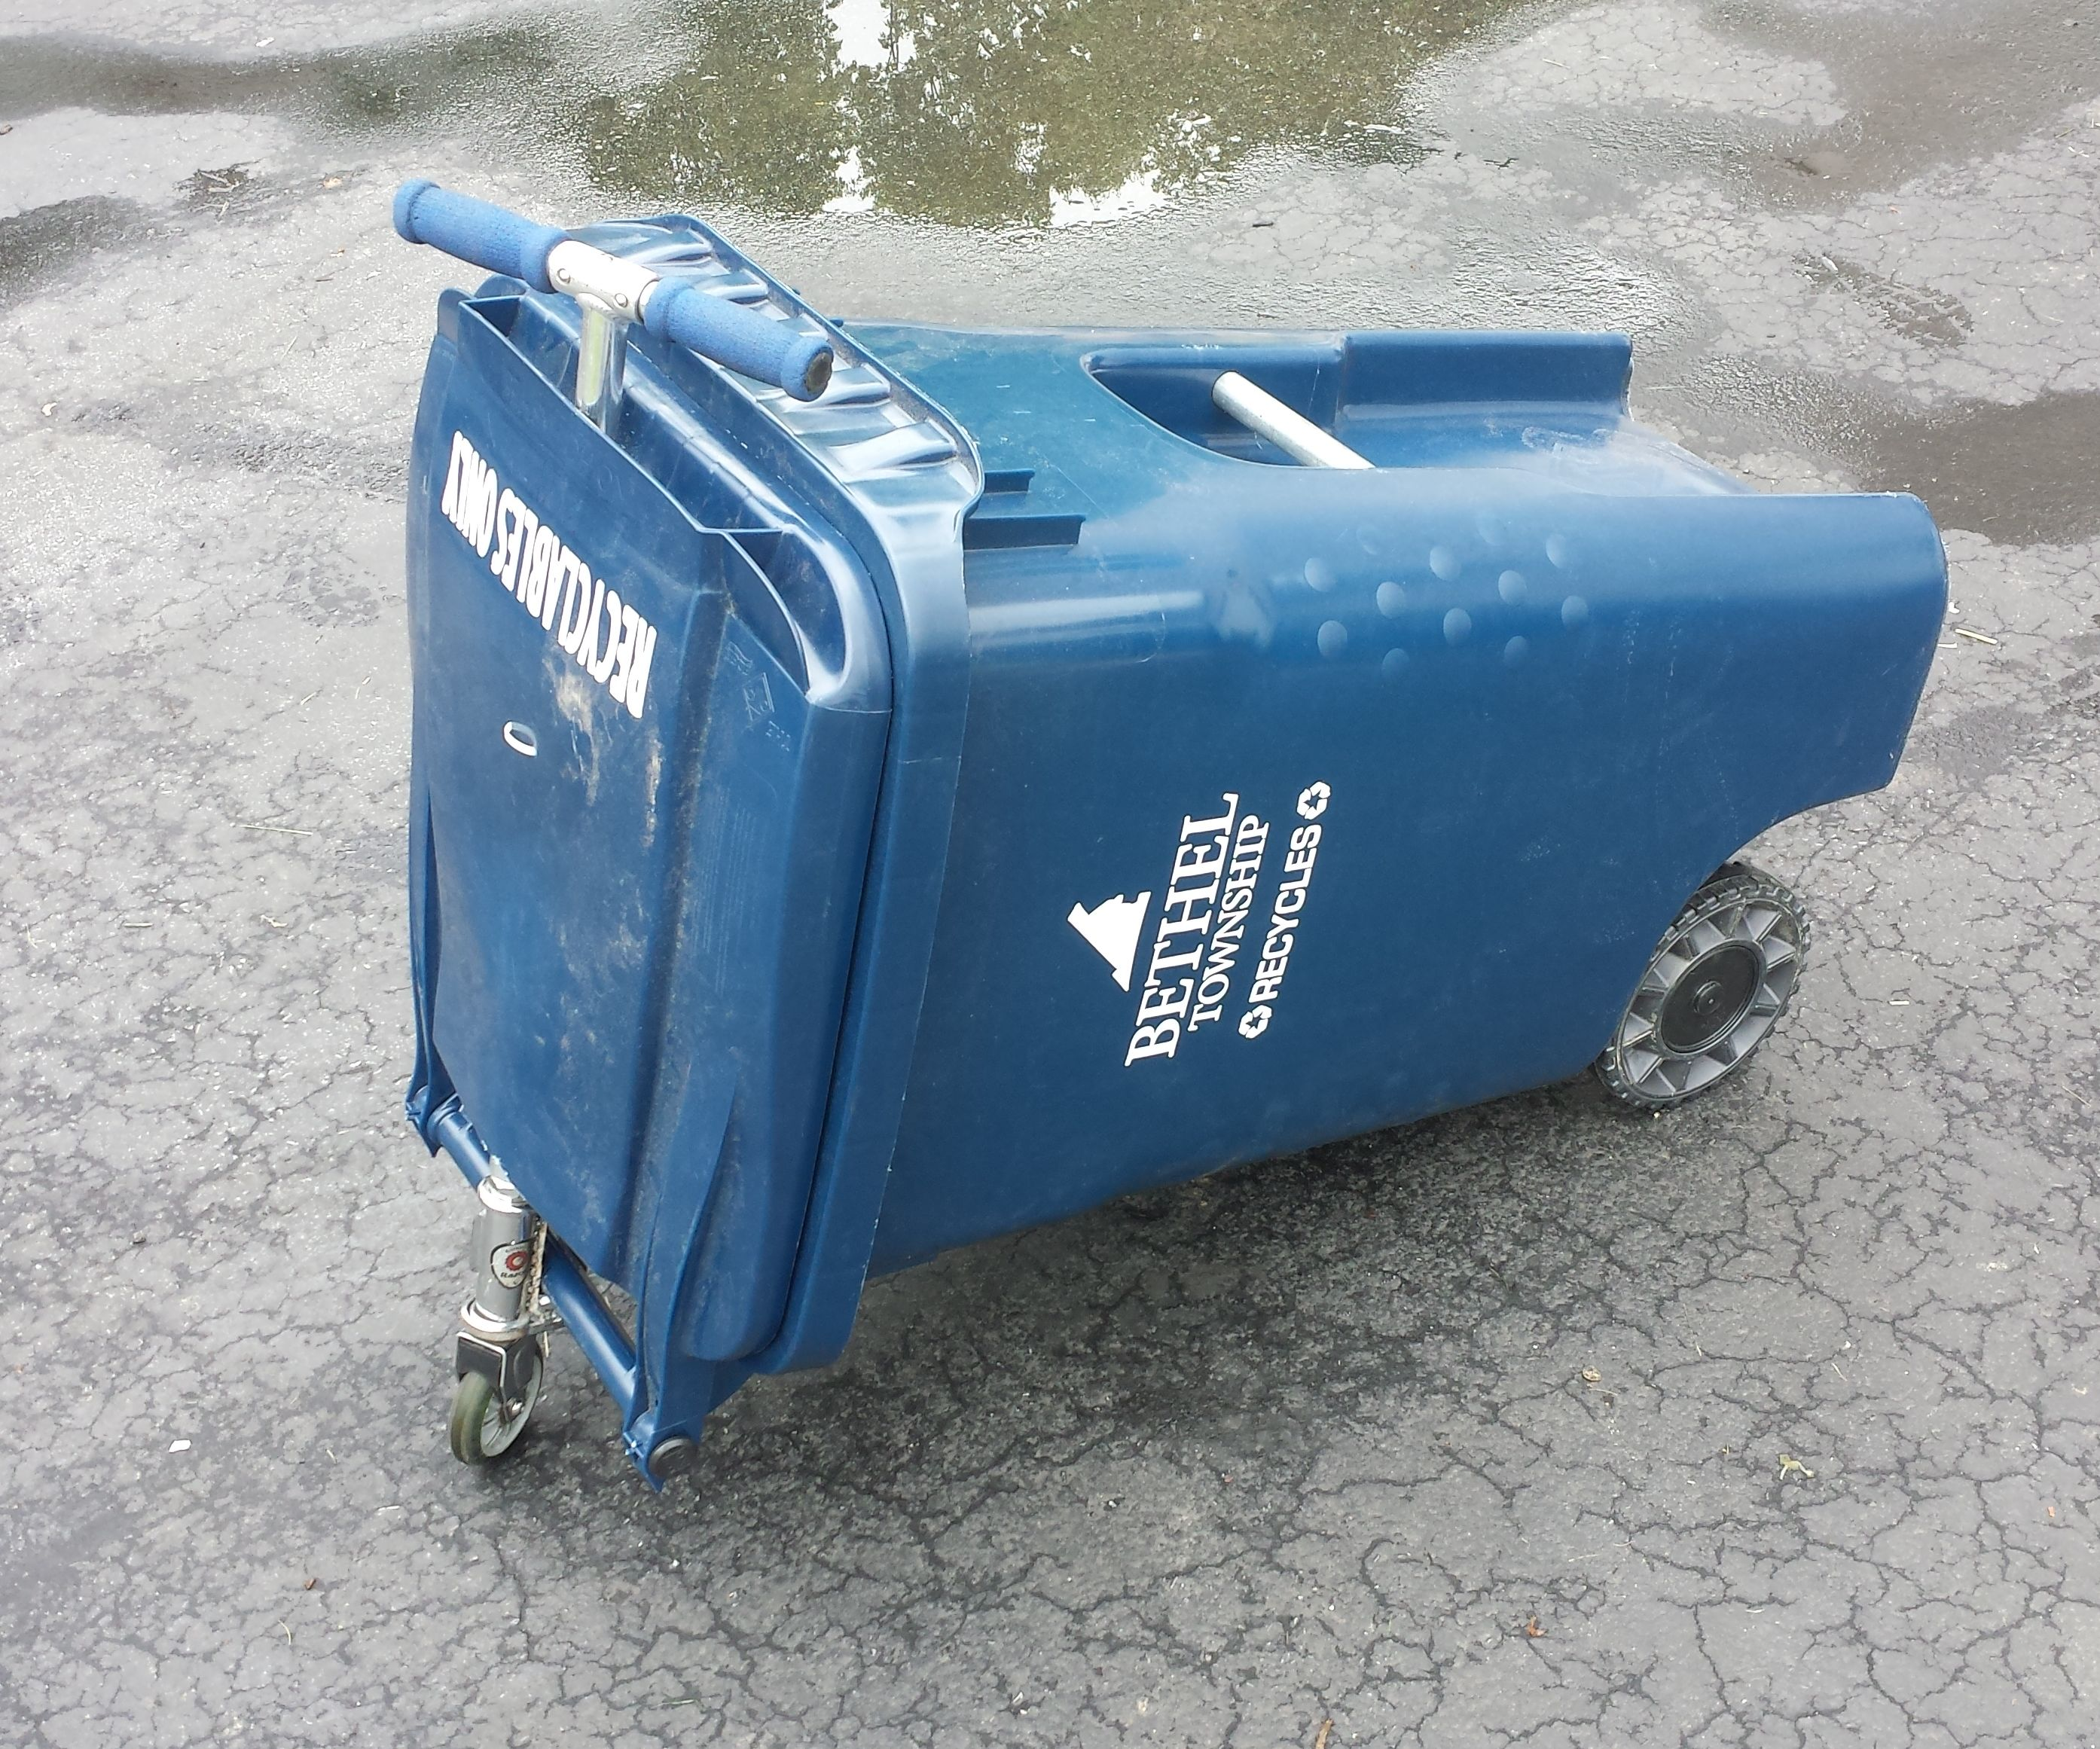 Rideable Trash Can 2.0